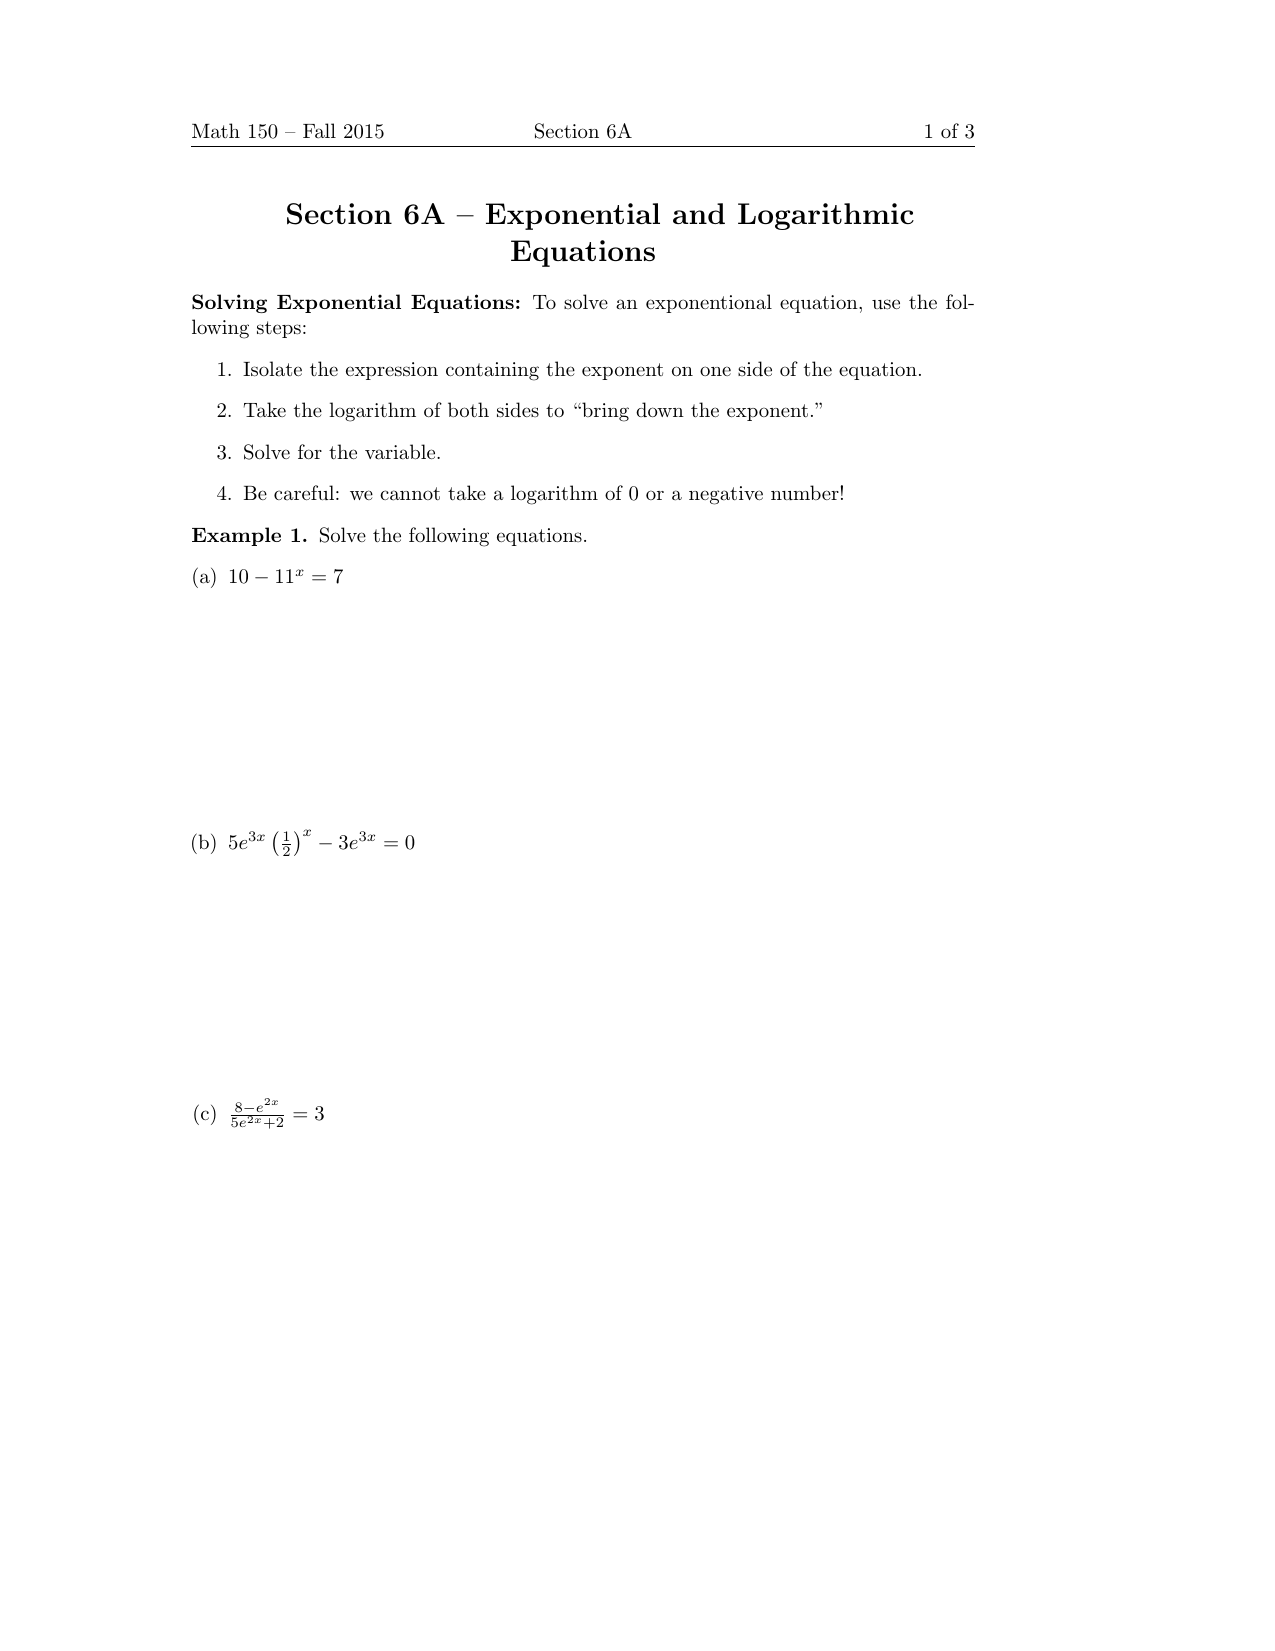 Section 6a Exponential And Logarithmic Equations